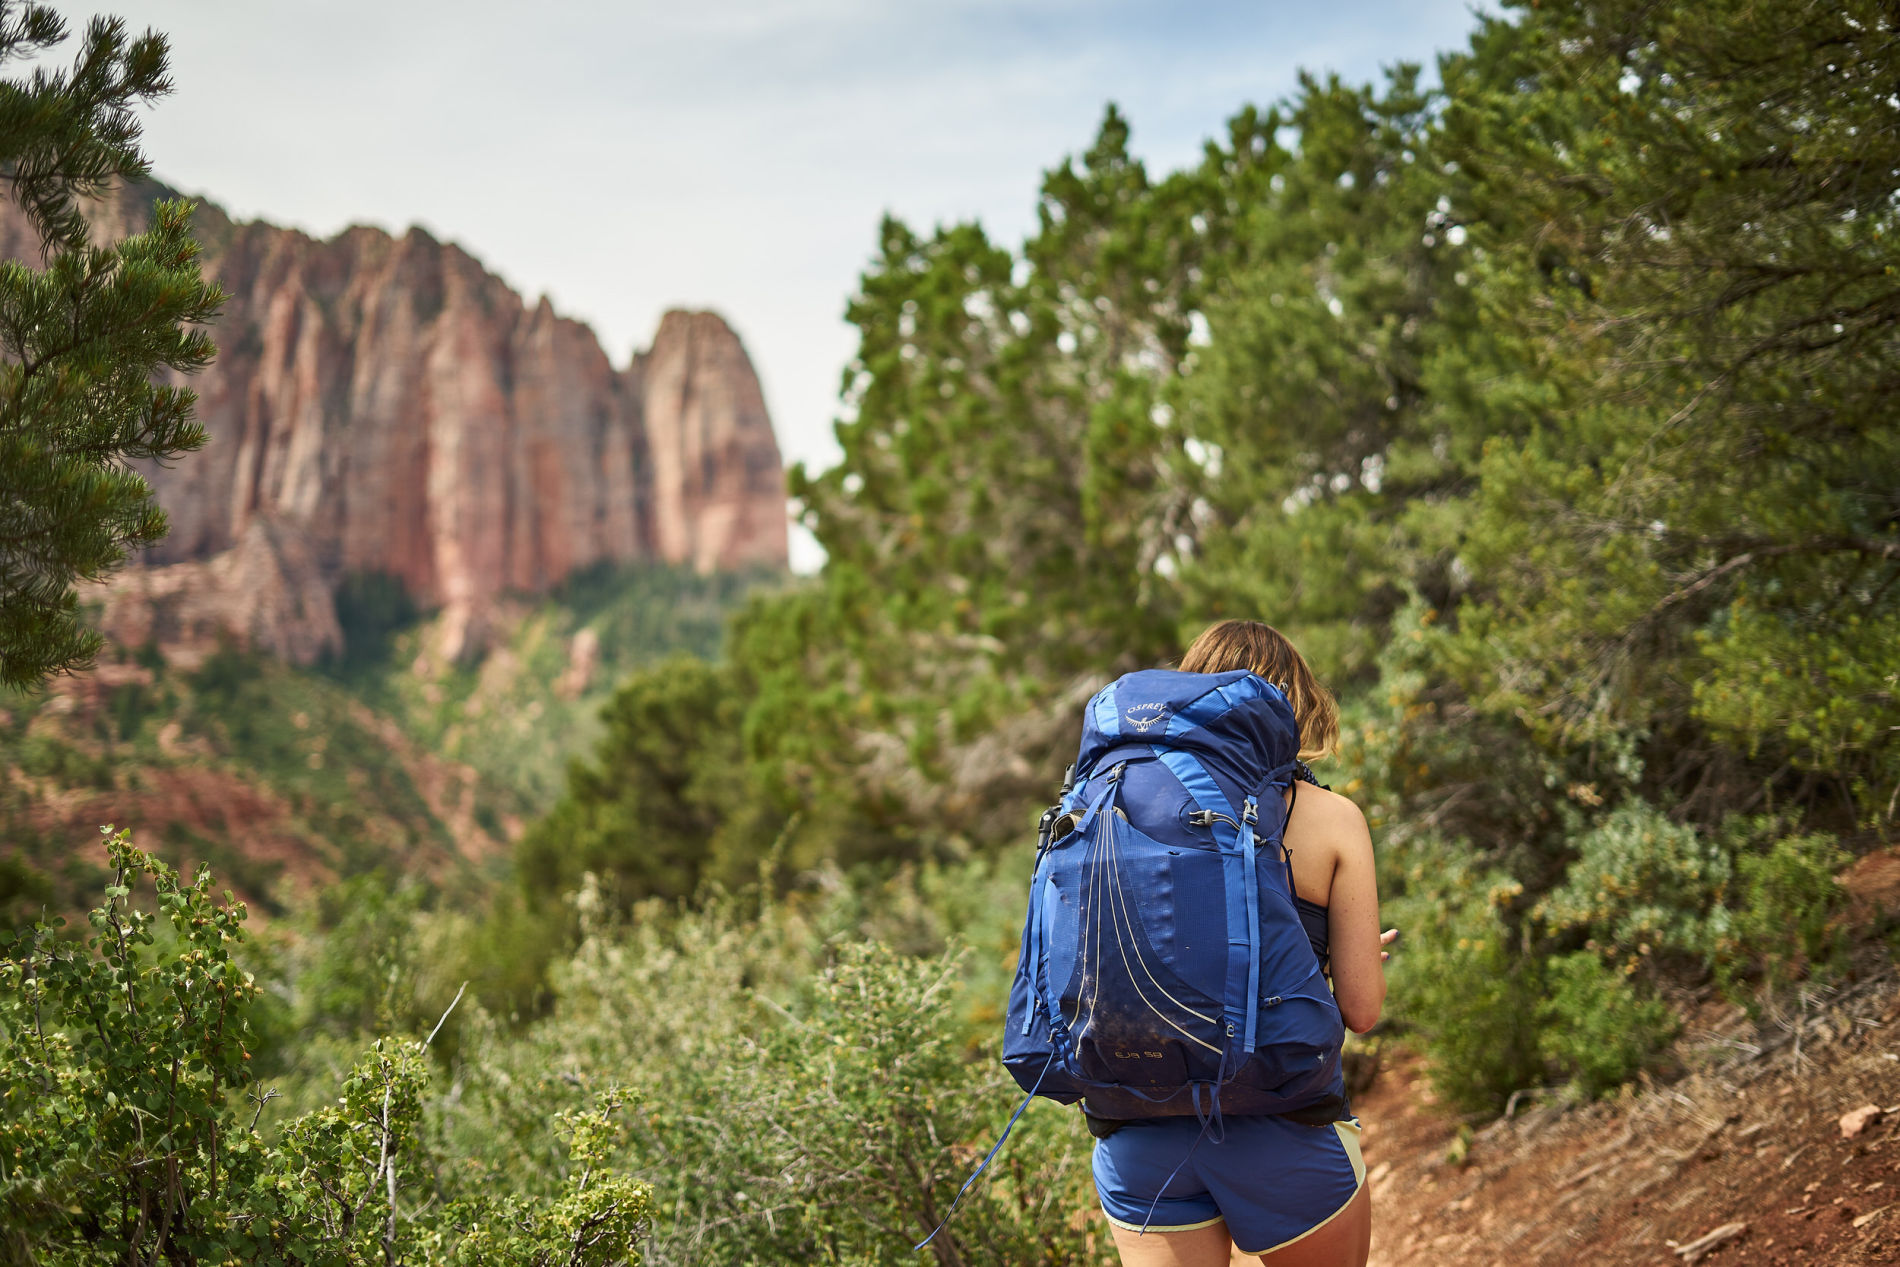 Amanda Outside backpacking blog - you're go-to source for hiking and camping. Click through to learn all about backpacking in Kolob Canyon and how to plan your trip. www.amandaoutside.com